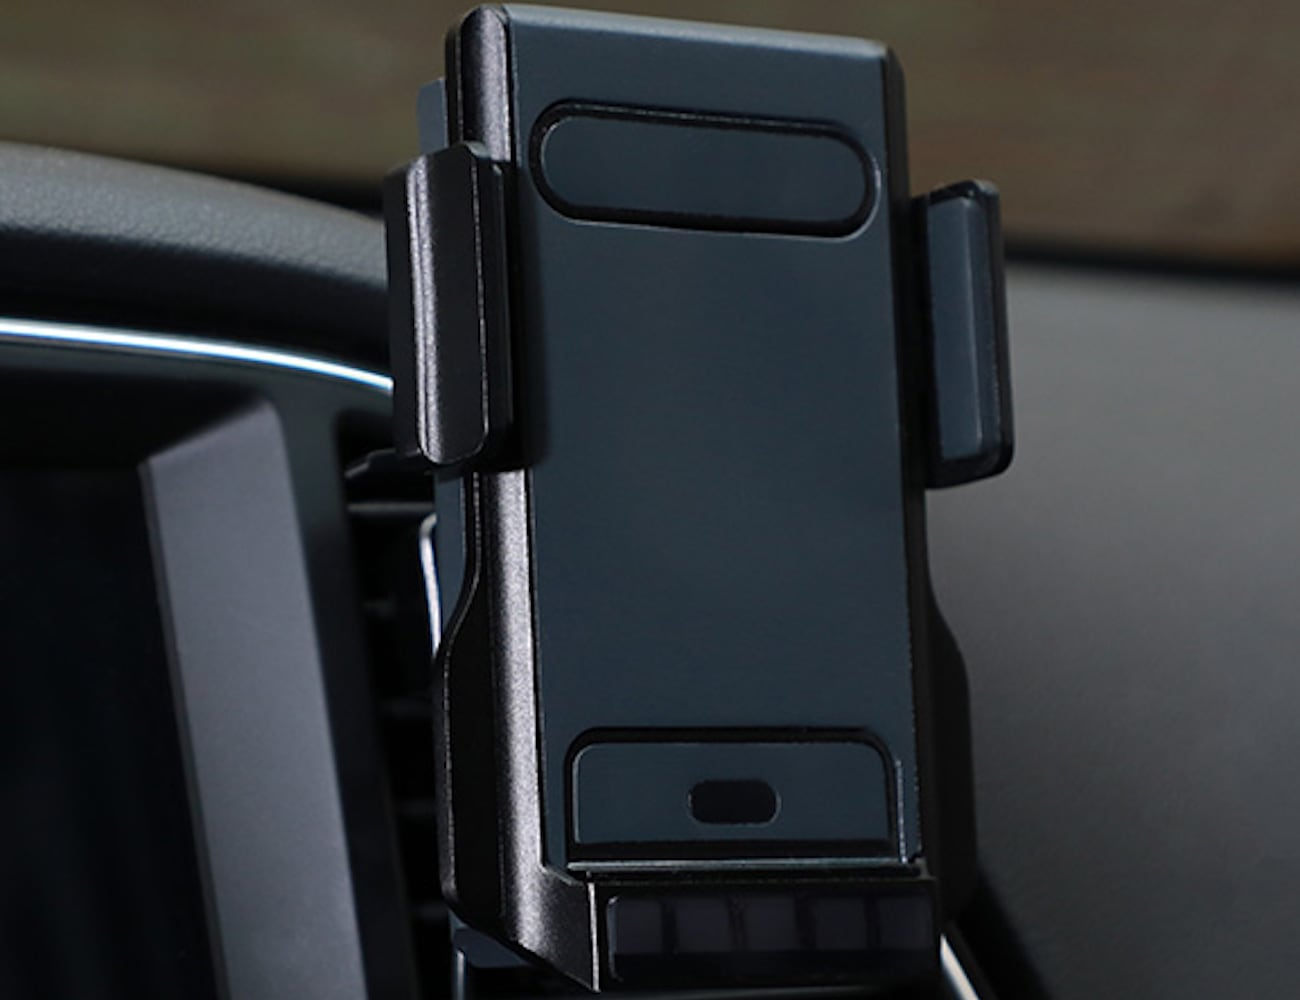 Autohold Automatic Wireless Charging Phone Stand is all about convenience